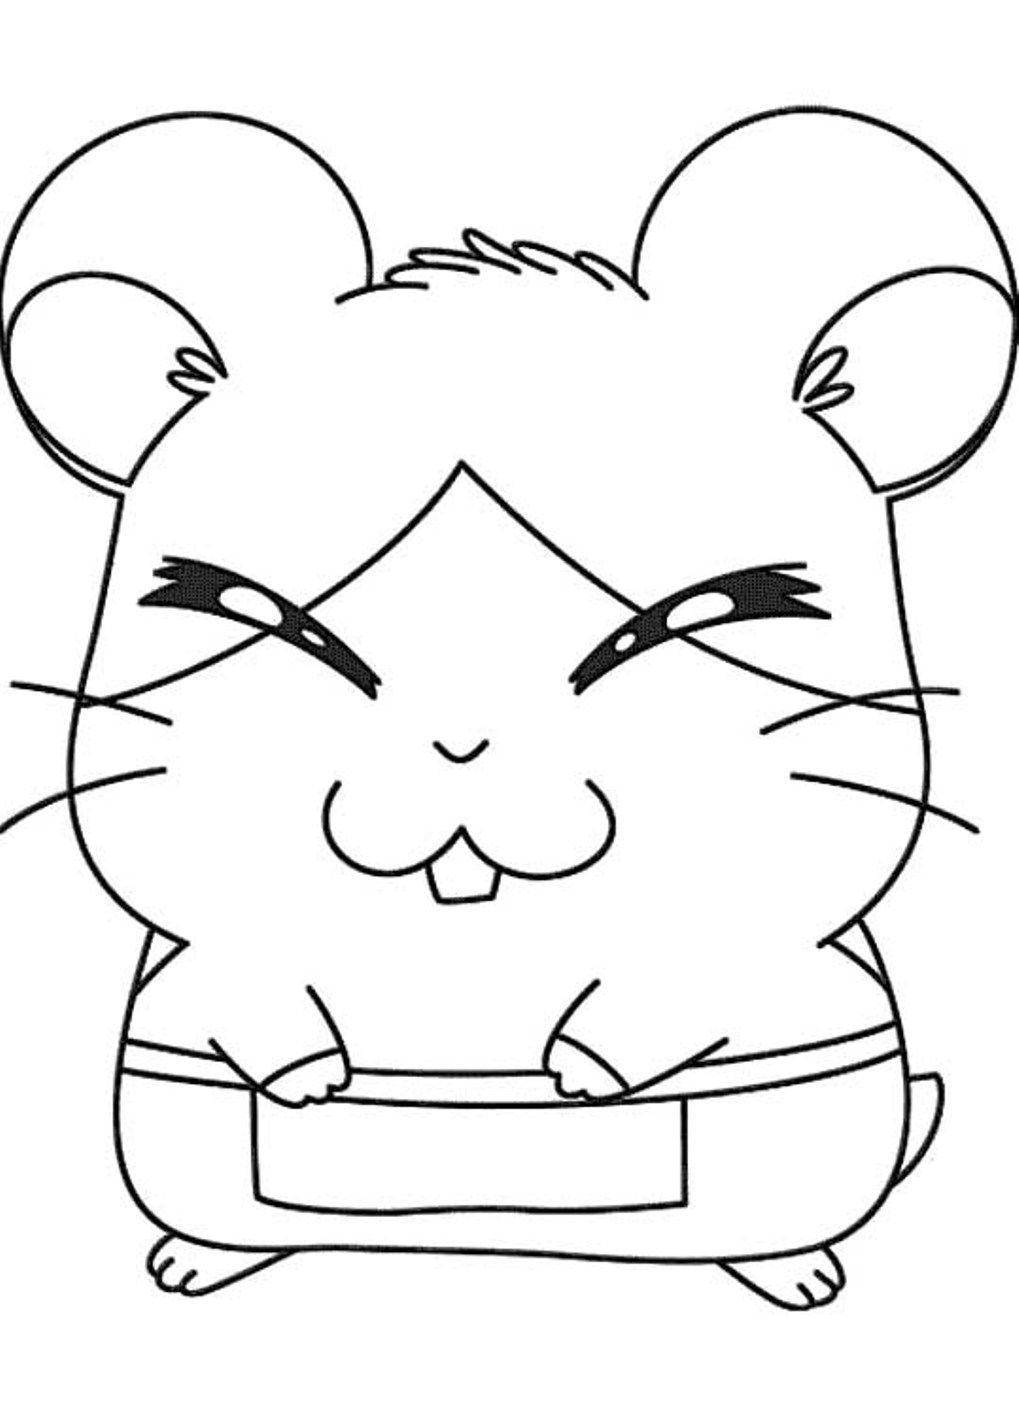 Uncategorized Hamtaro Coloring Pages hamtaro howdy smiled shyly coloring pages pinterest cute kidsdrawing free online